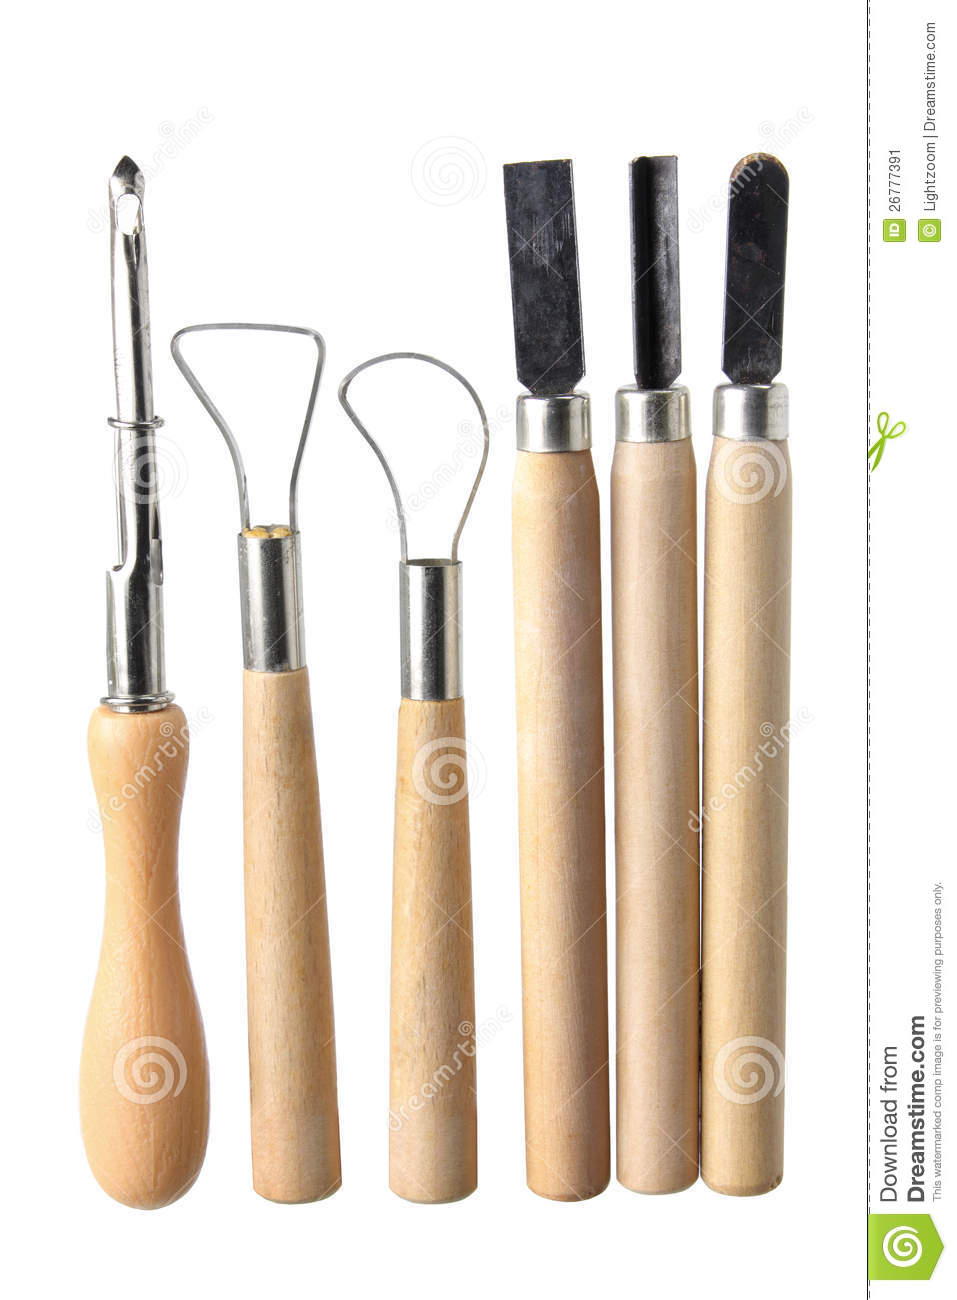 art and craft tools stock image image of clay pottery